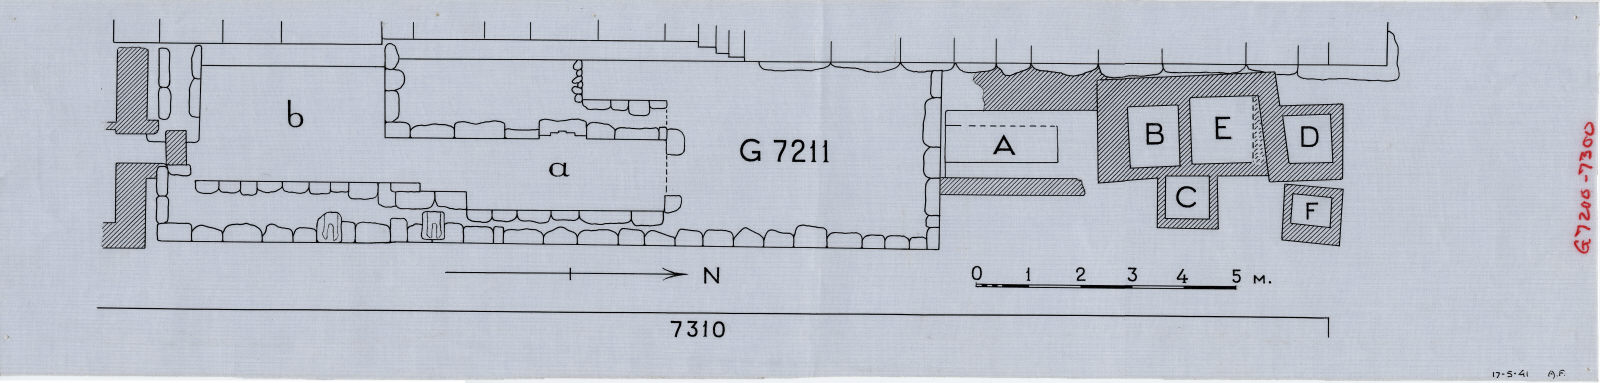 Maps and plans: G 7211, Plan